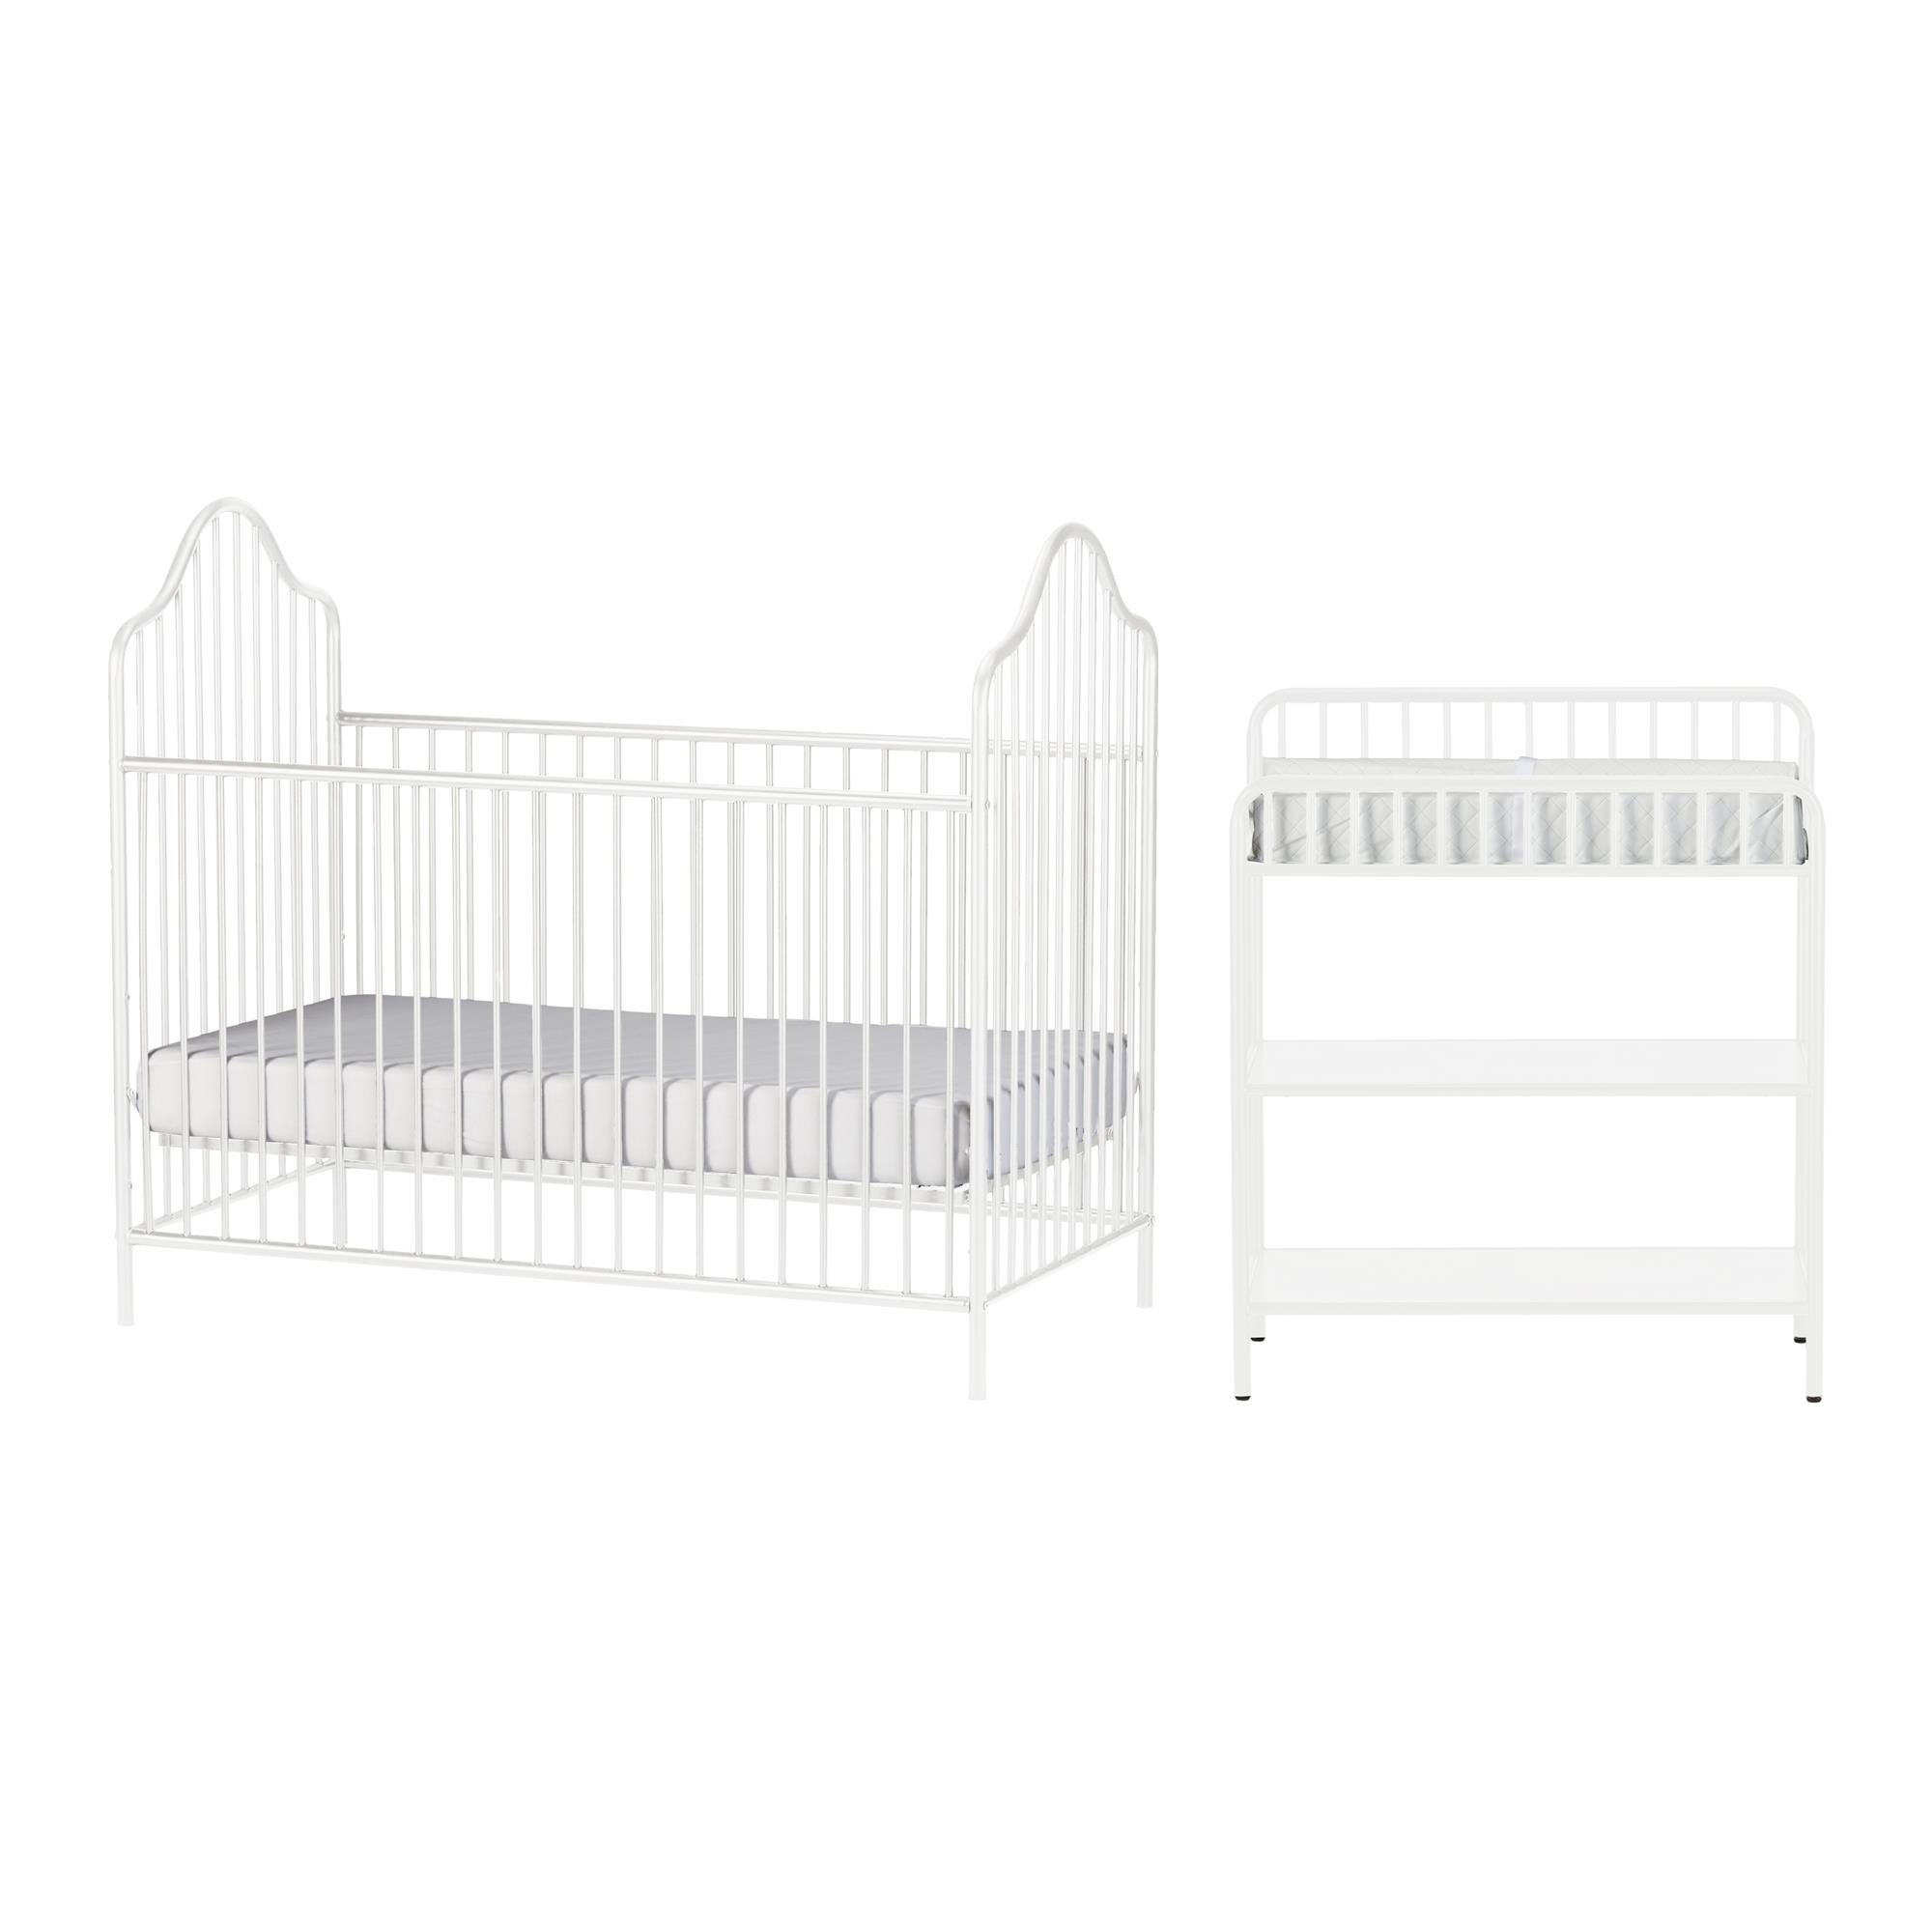 Little Seeds Rowan Valley Lanley Metal Crib and Changing Table Set, White by Little Seeds